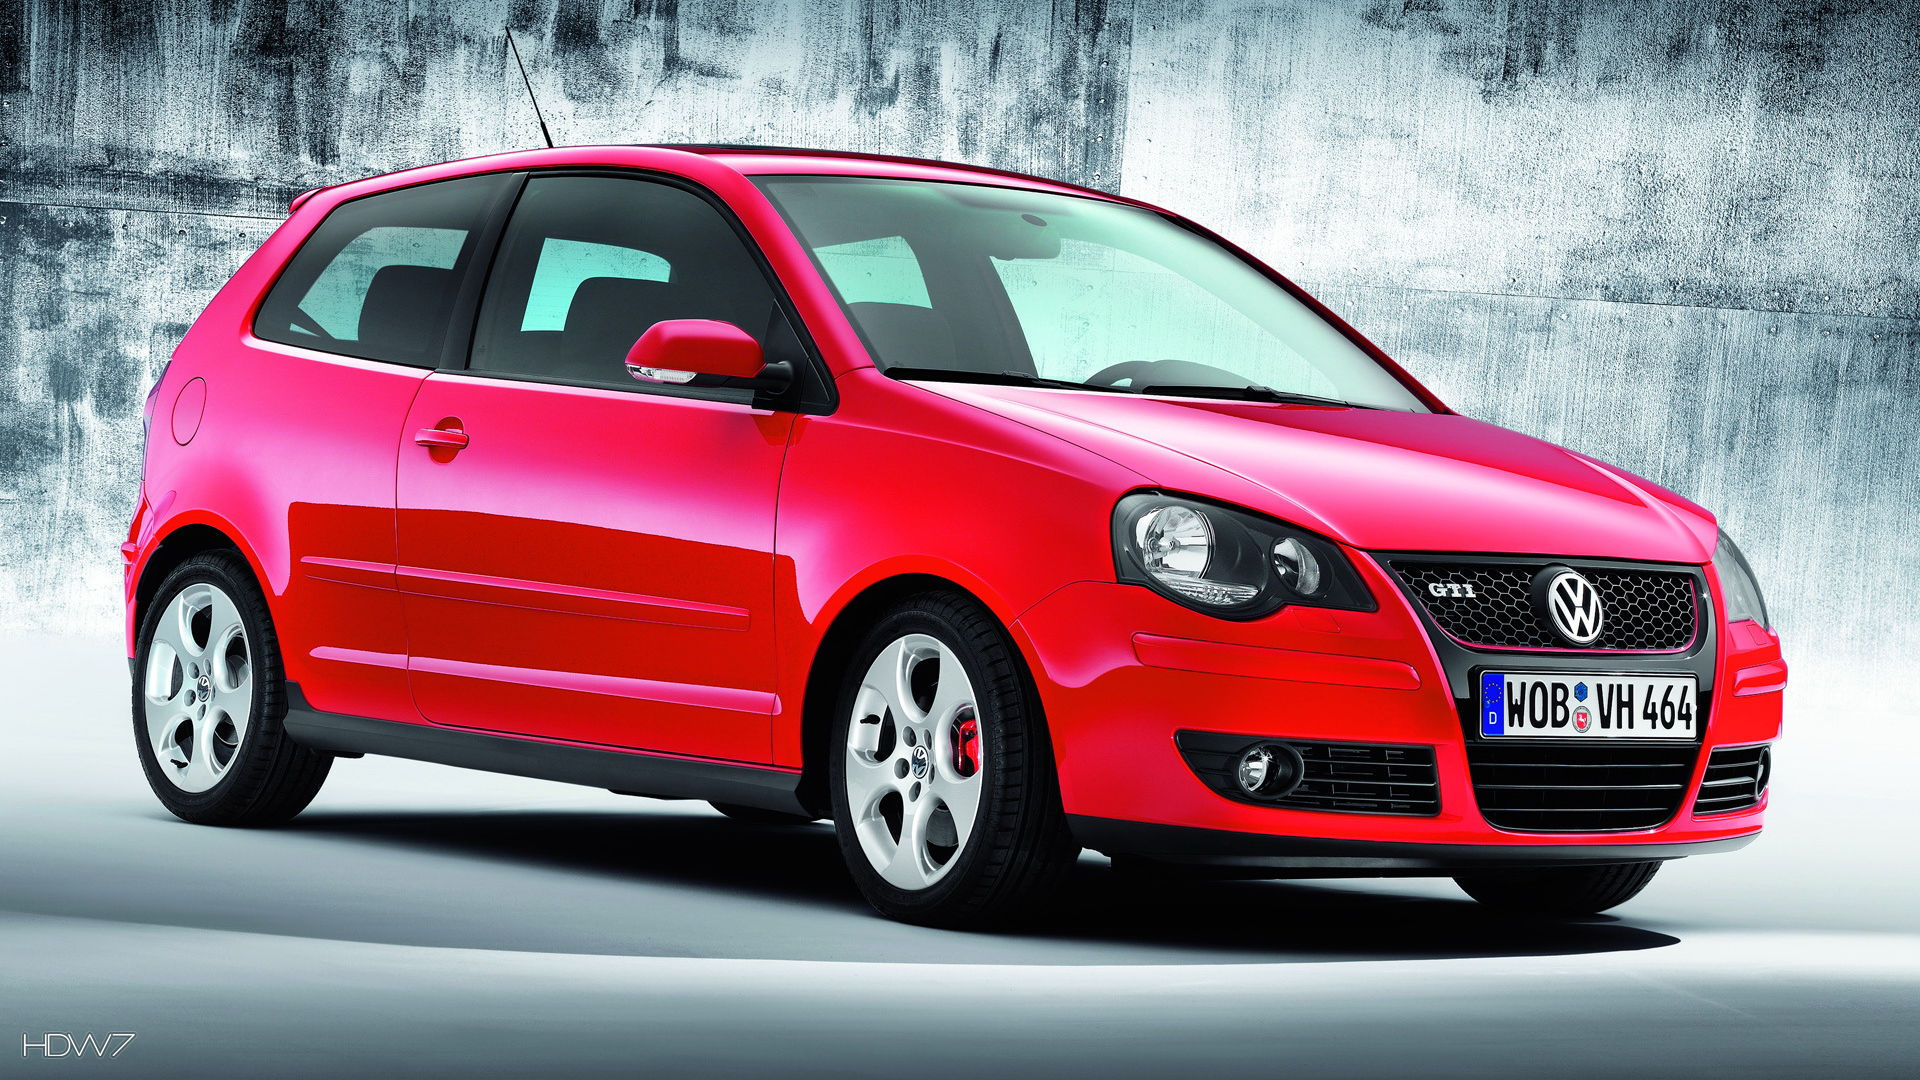 volkswagen polo gti 2006 car hd wallpaper